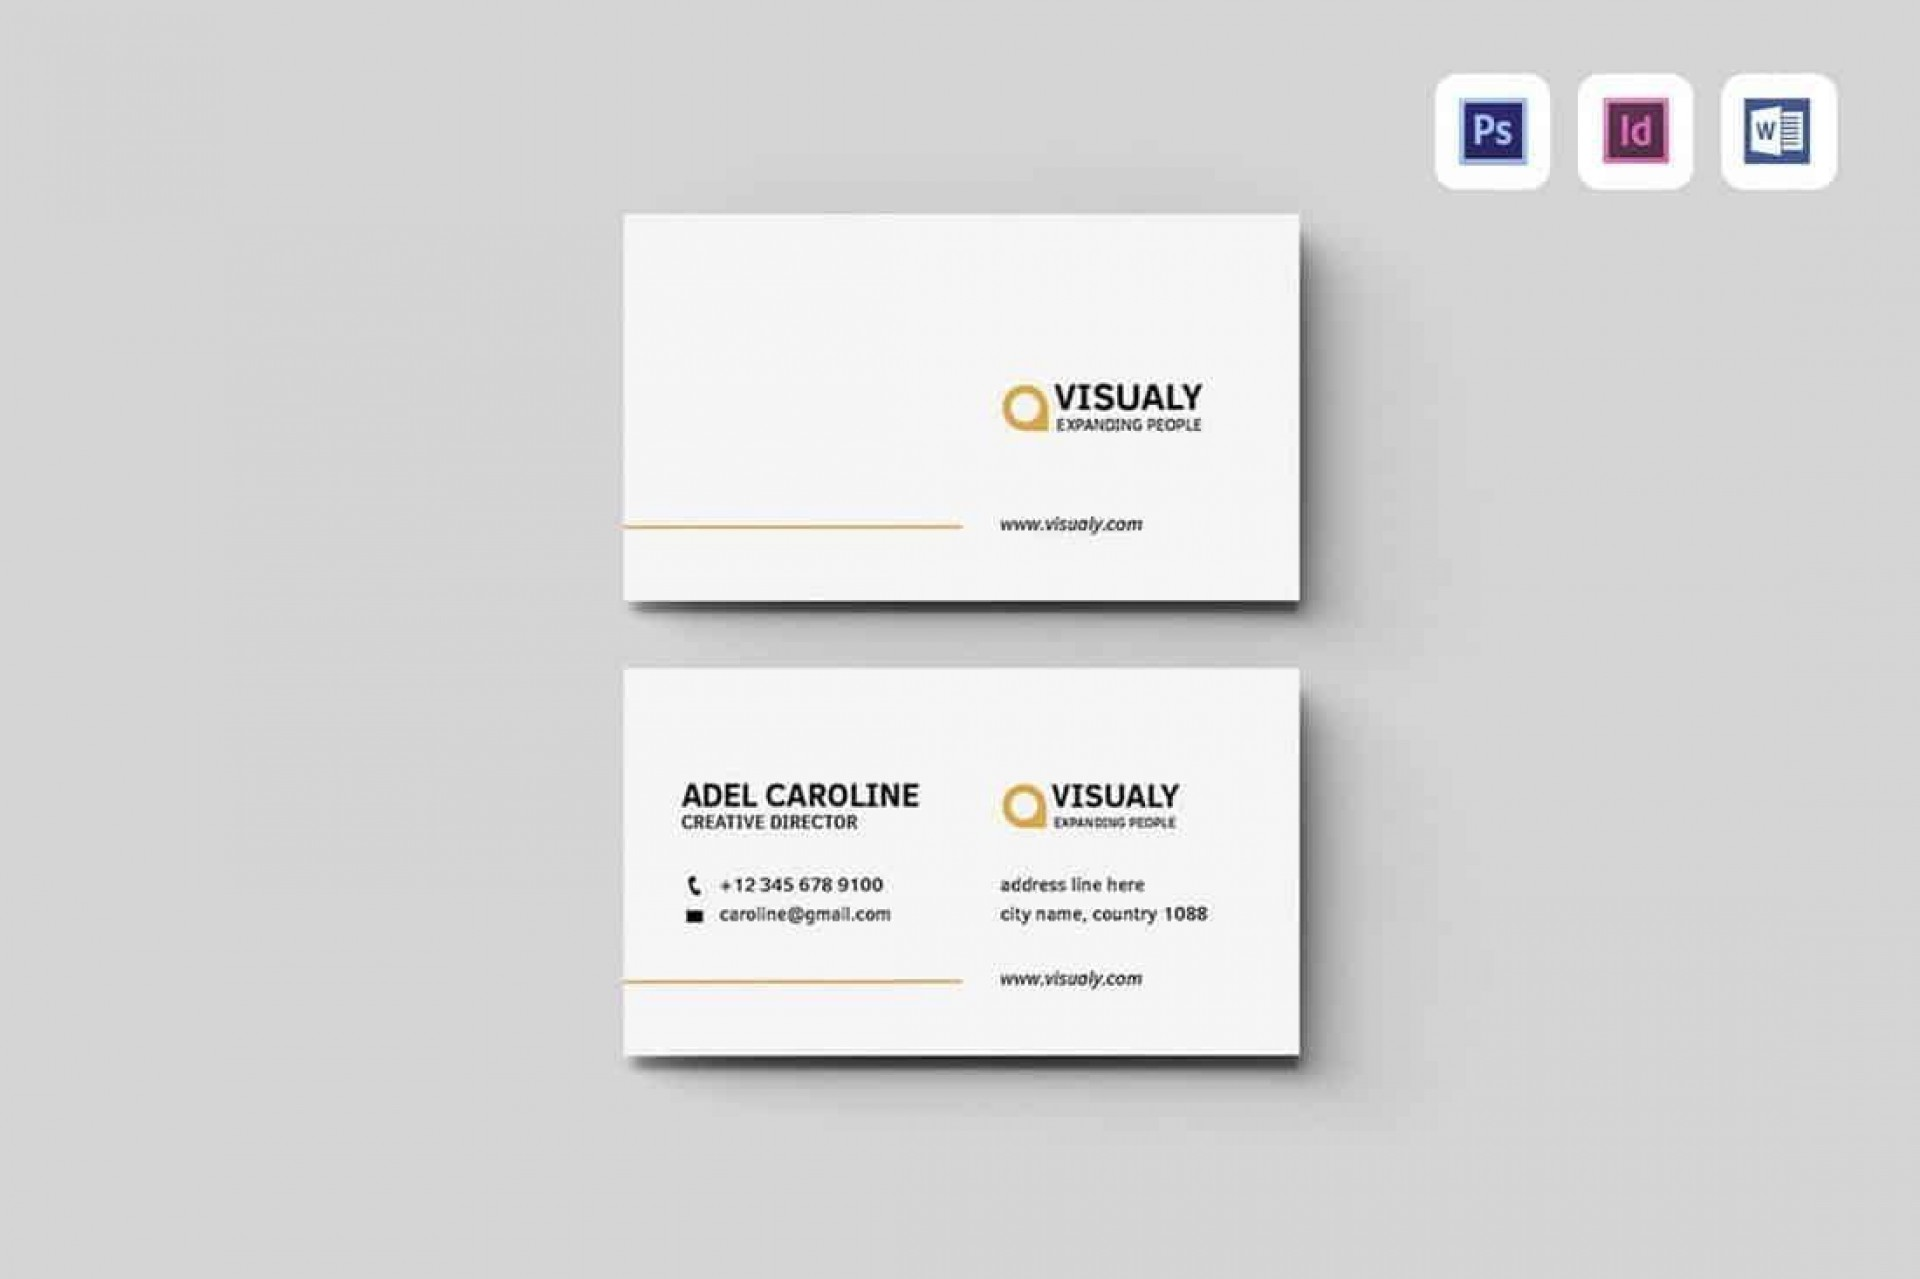 009 Awful Free Simple Busines Card Template Word Inspiration 1920